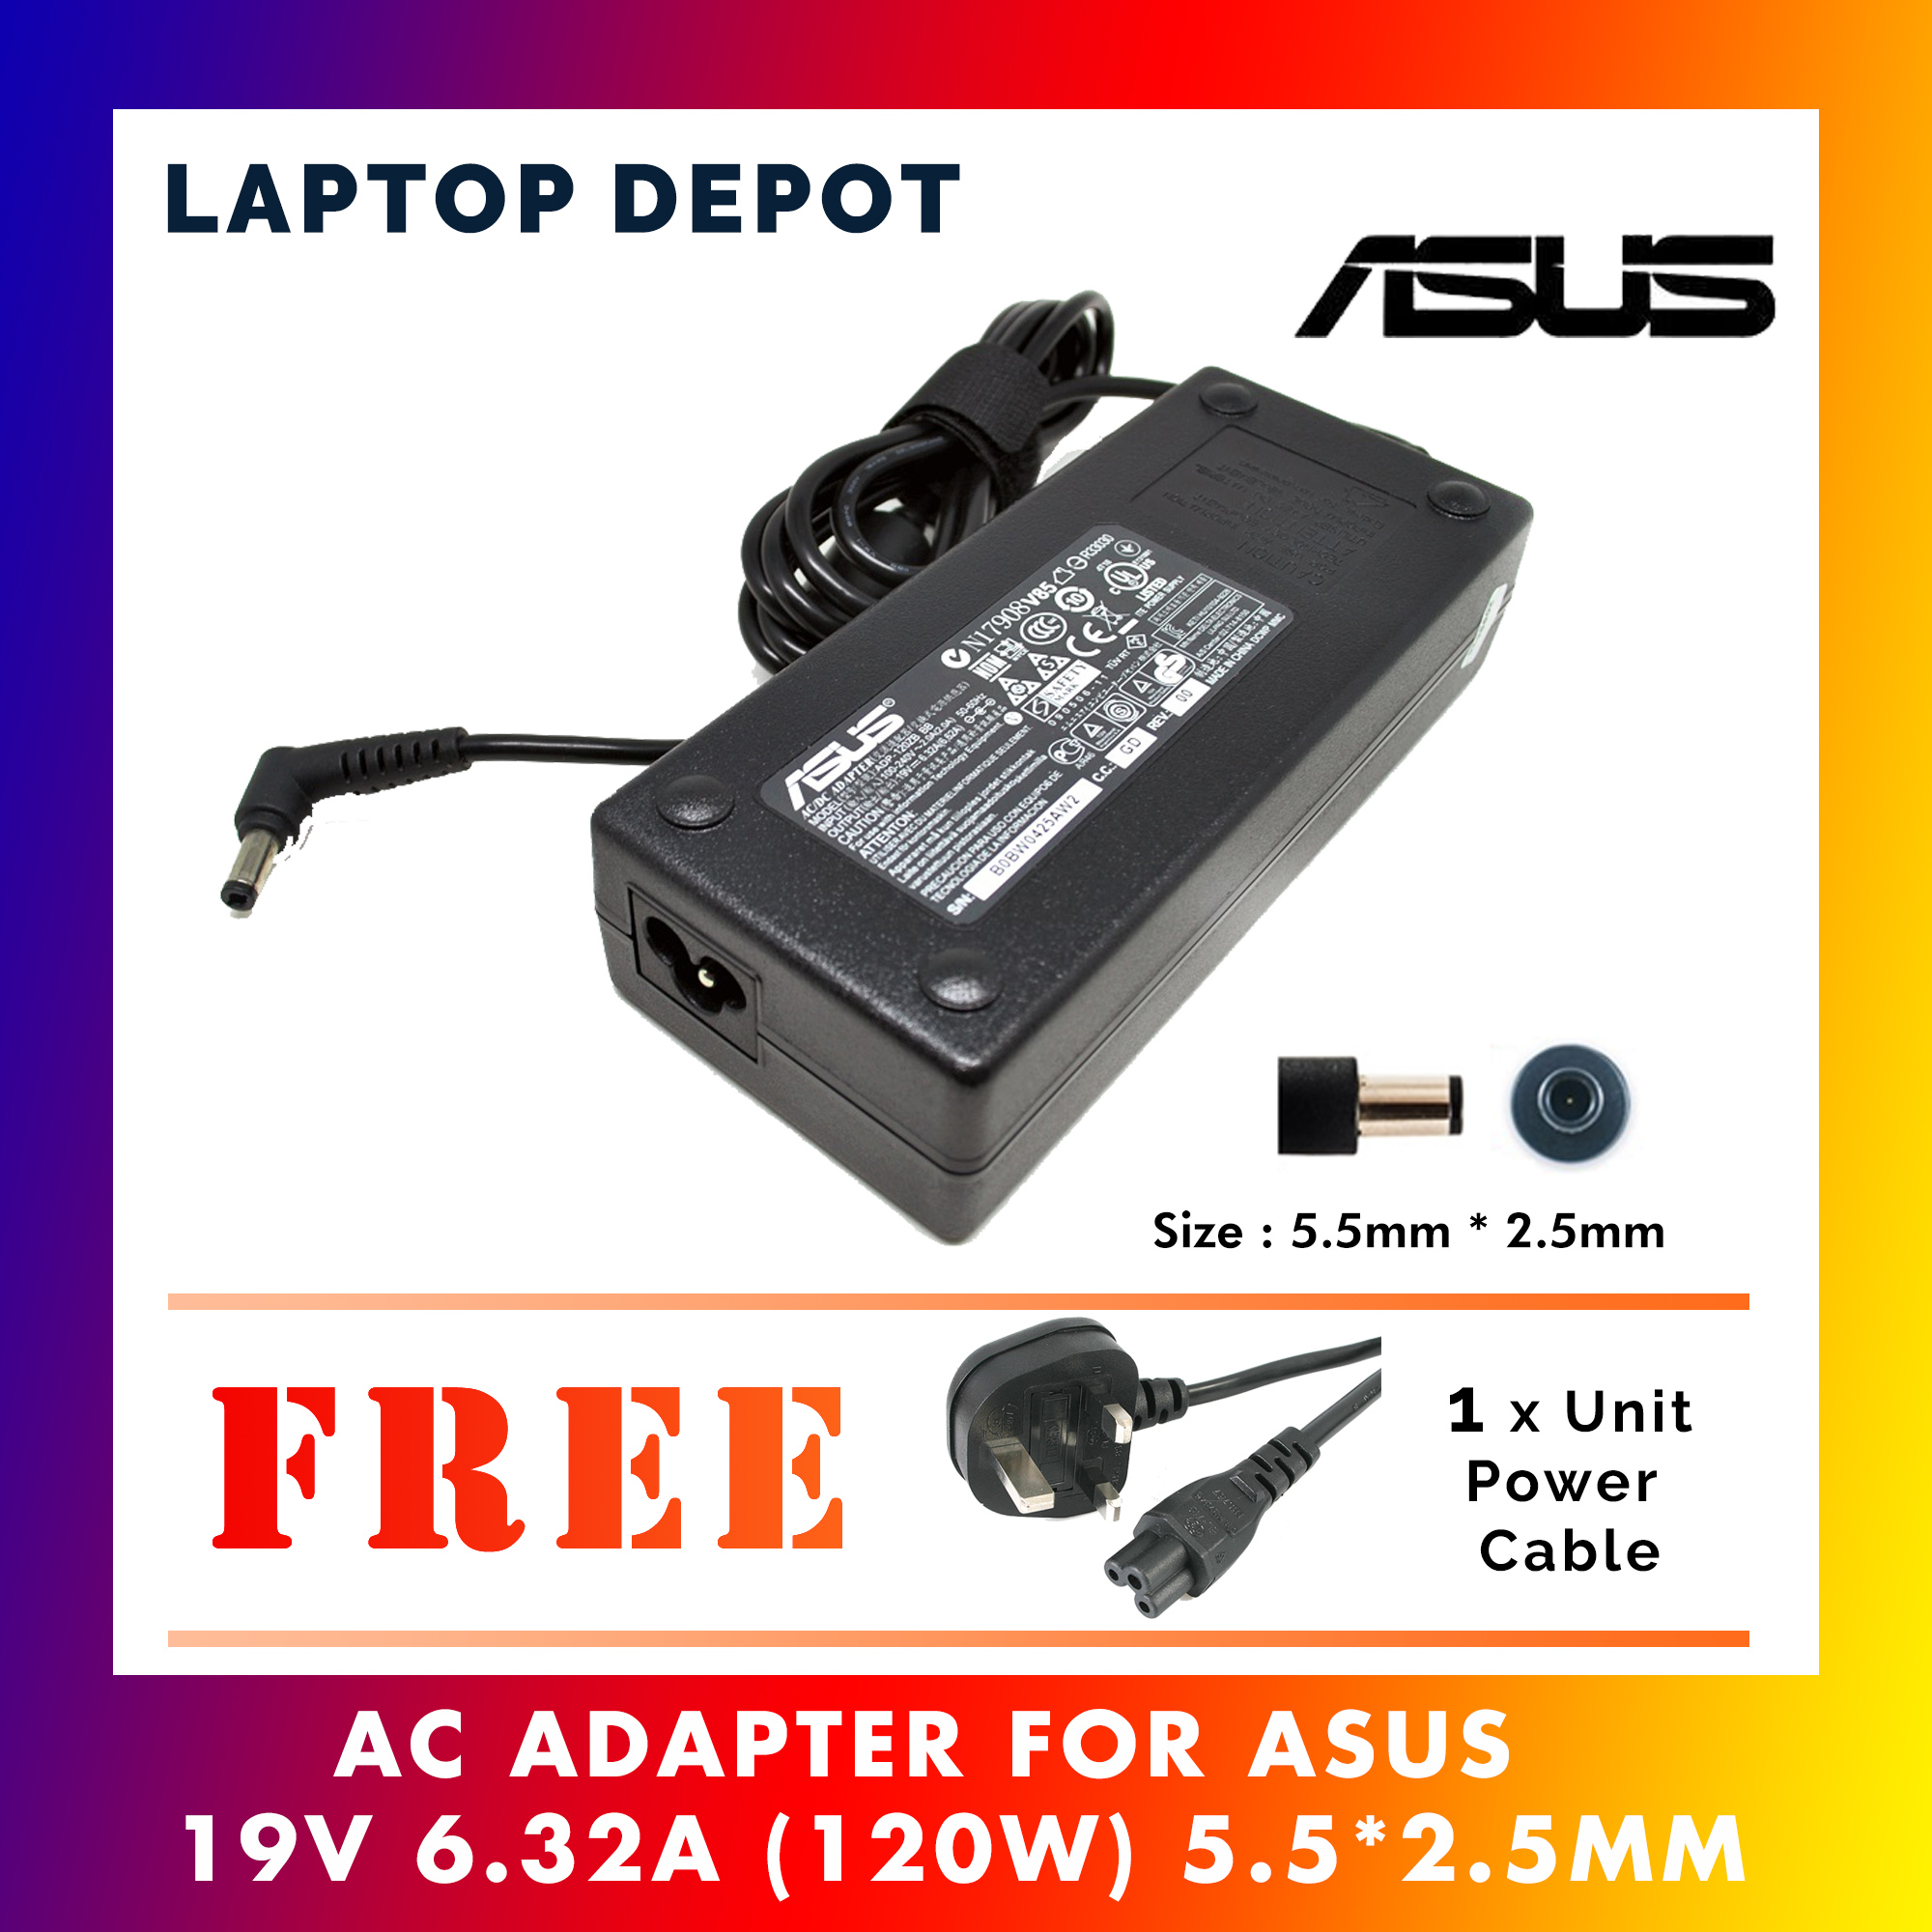 Asus Laptop Adapter 19V 6.32A (120W) For N750 N500 G50 N53S N55 GL552 Series